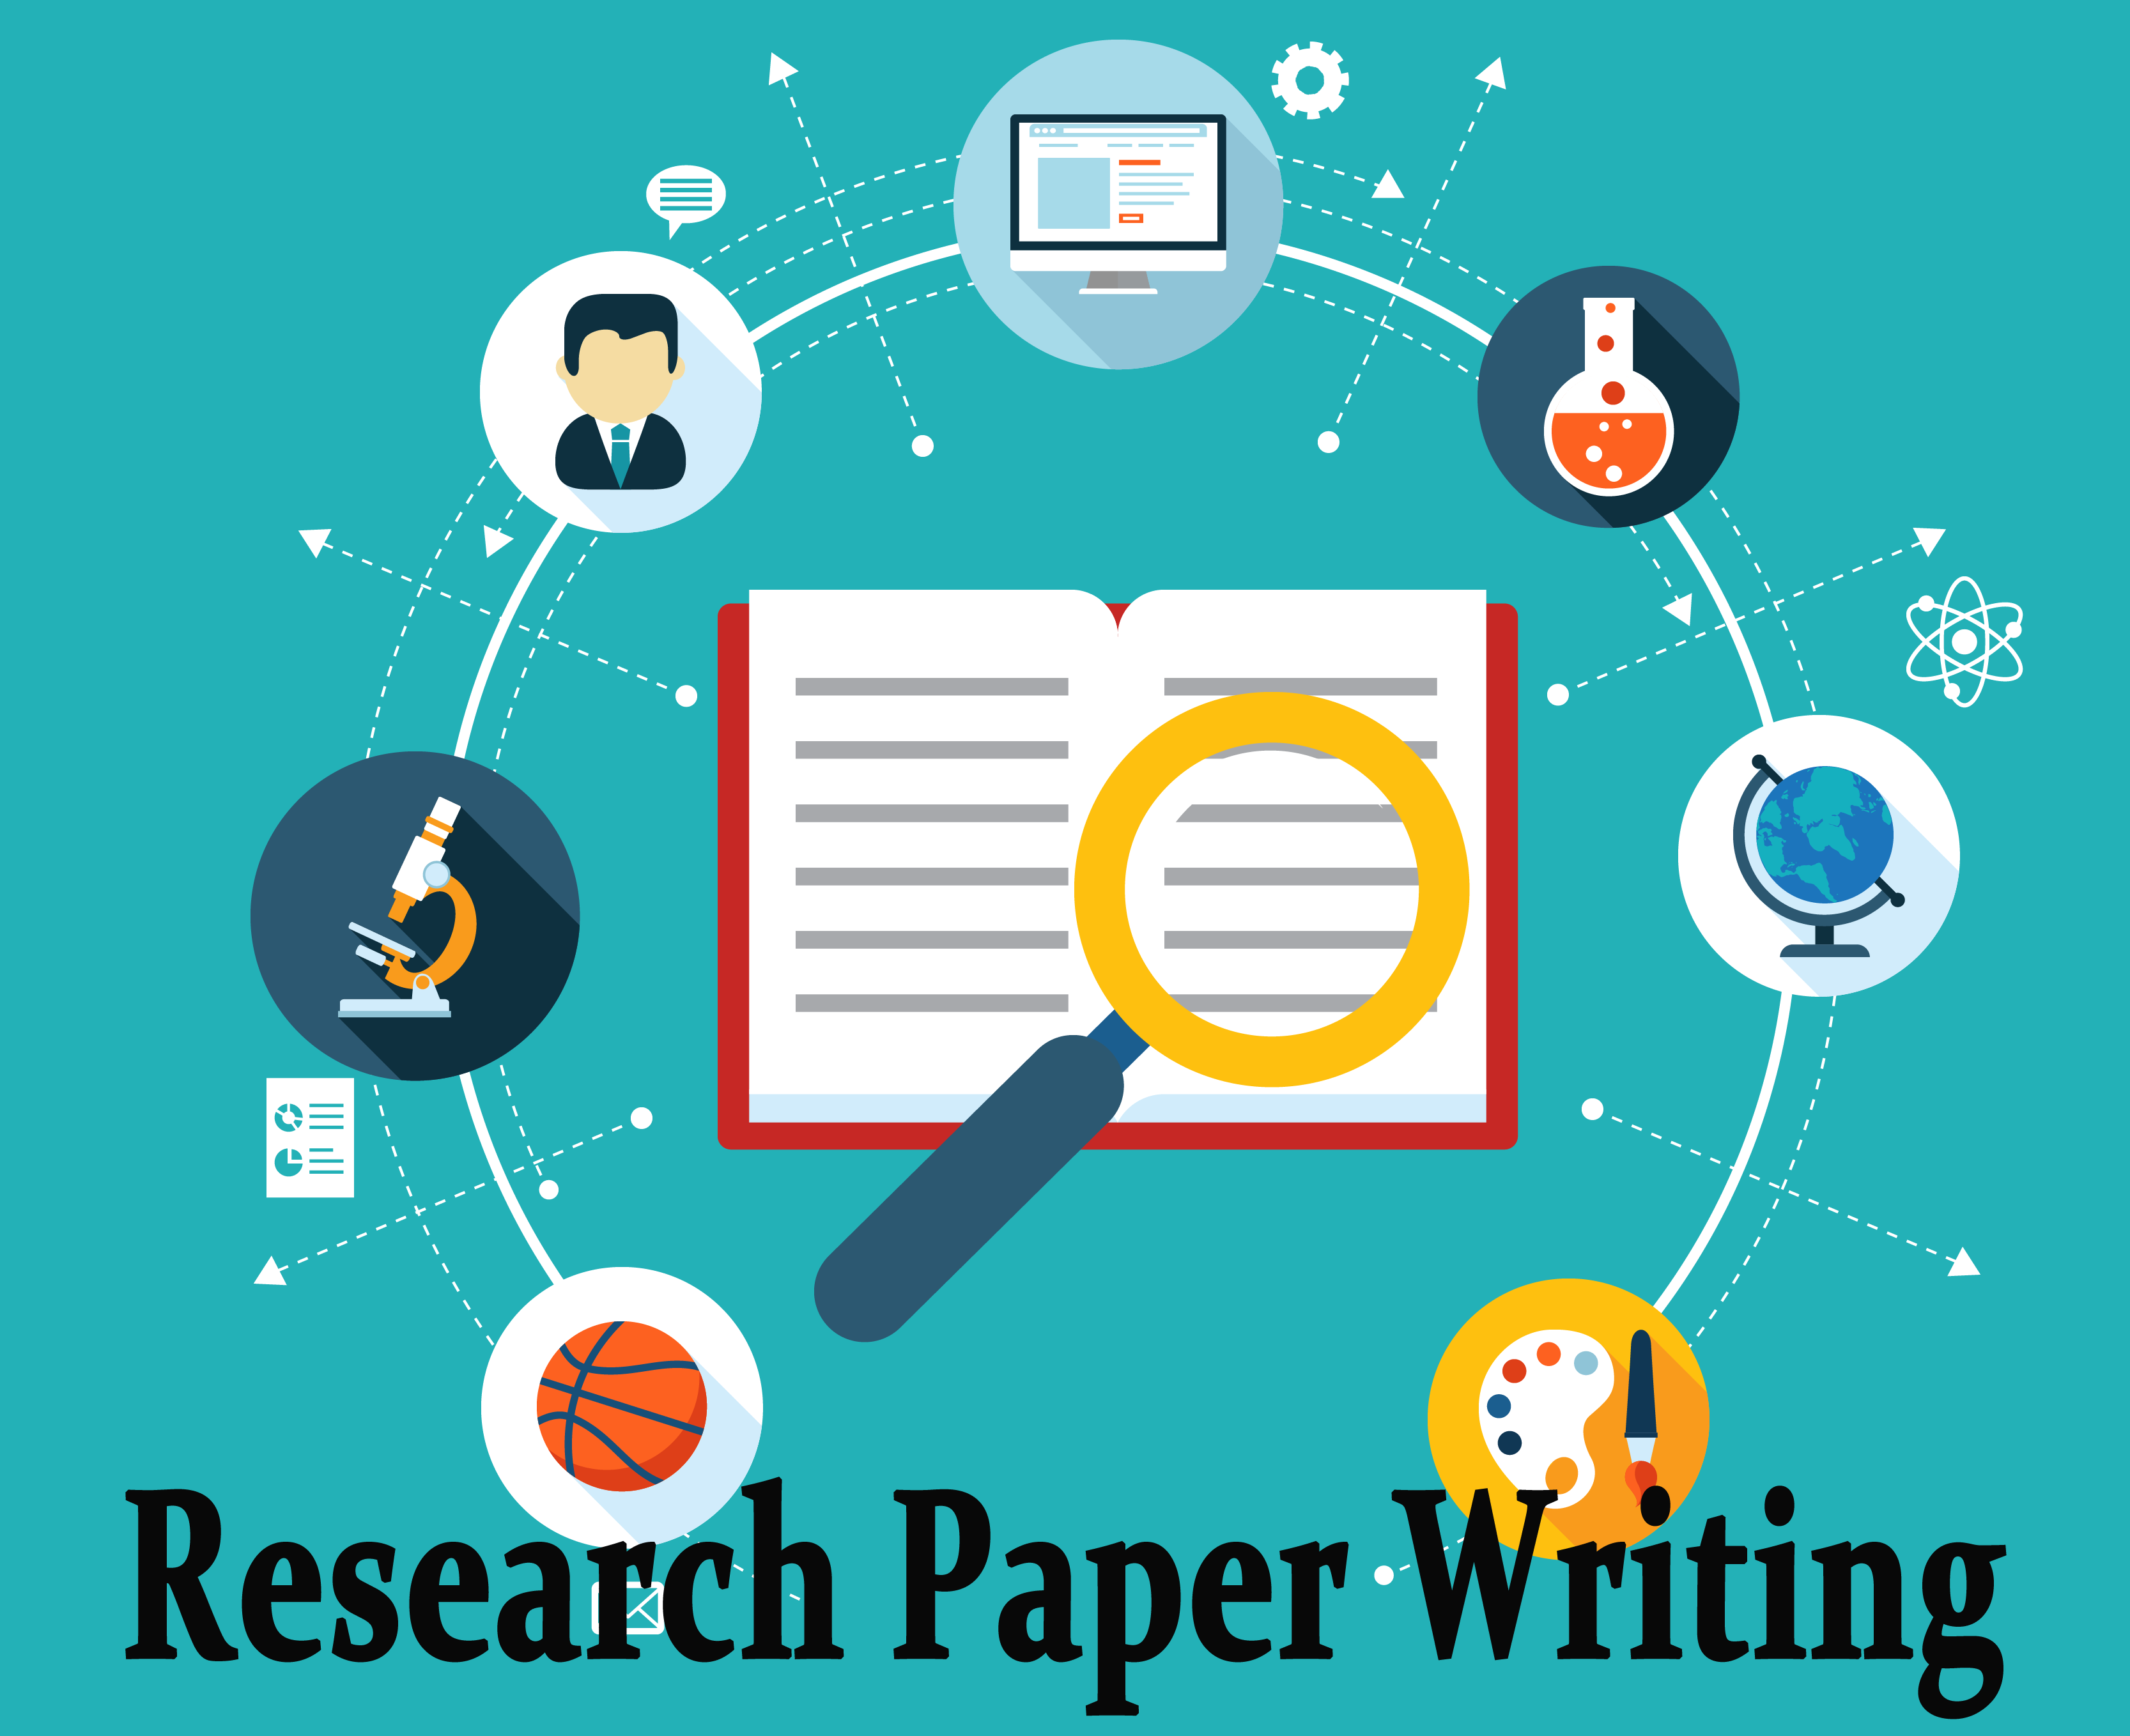 002 Research Paper Help Me Write 503 Effective Writing Wonderful A My Introduction For Free Full